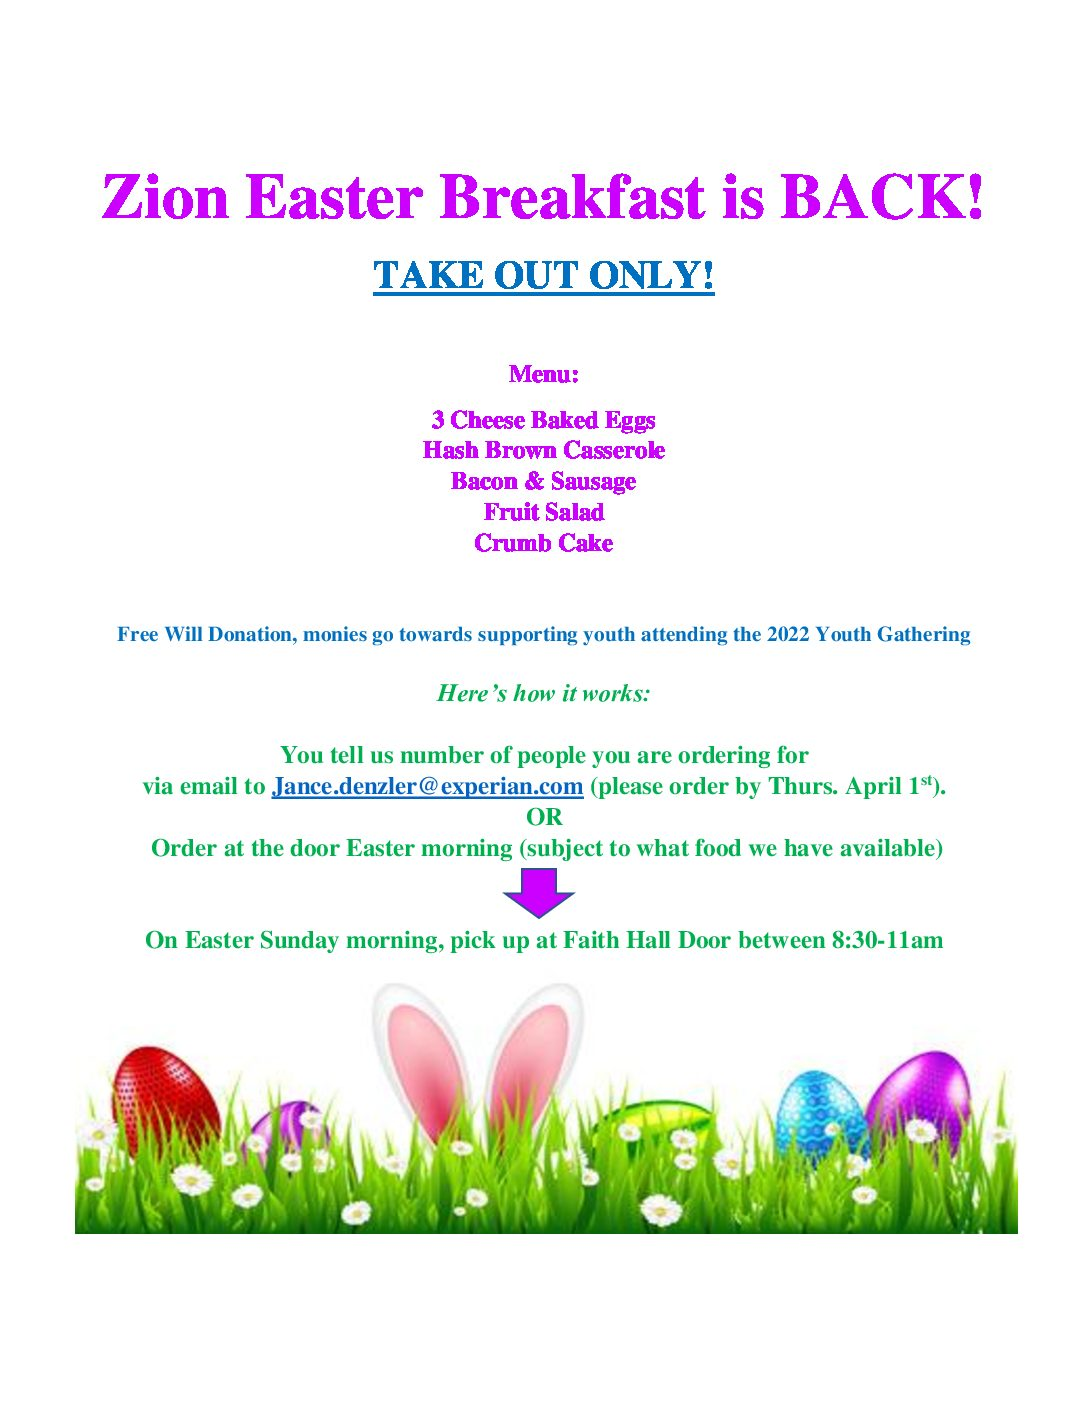 TAKE-OUT EASTER BREAKFAST